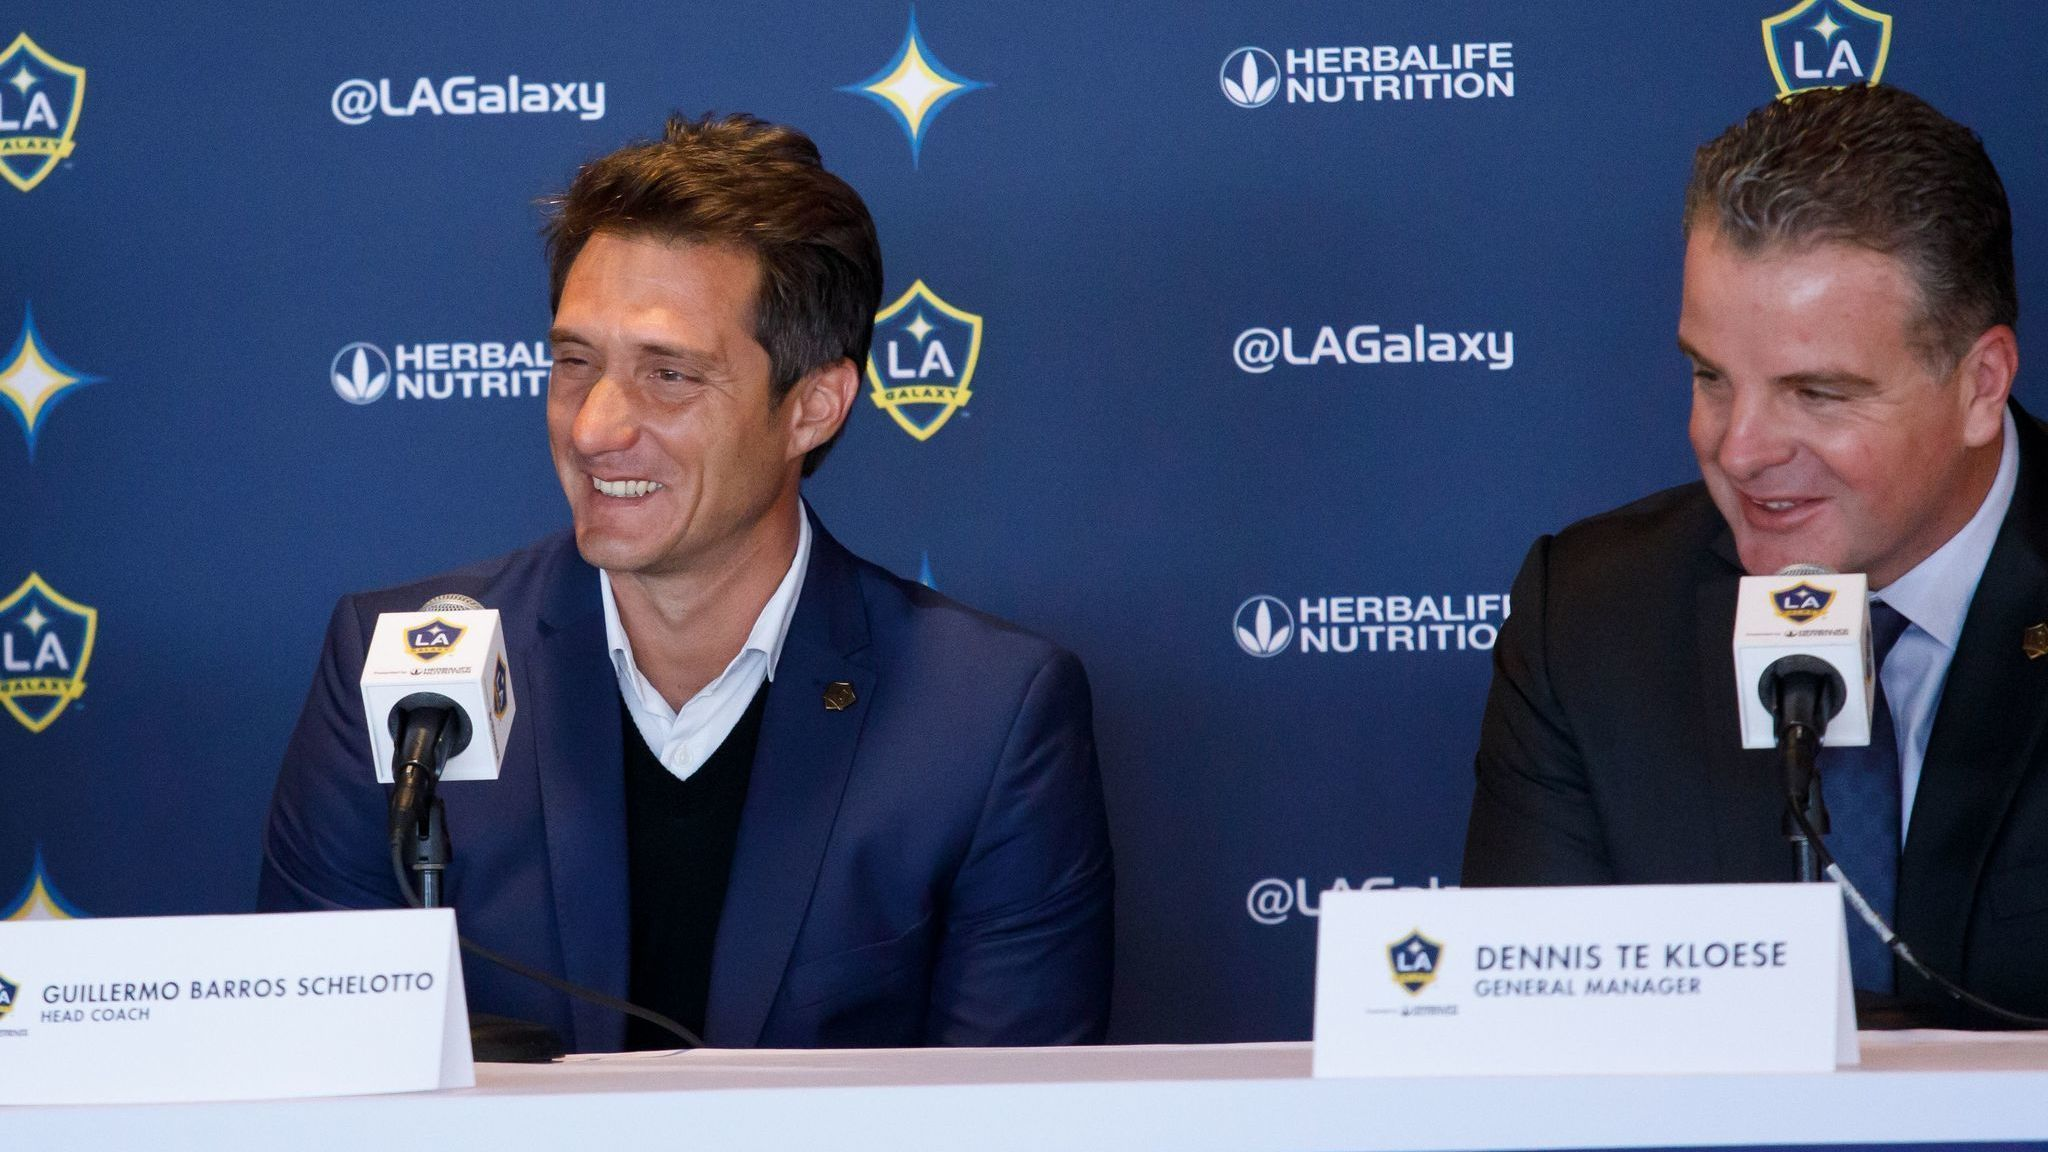 Galaxy refocus on the potential of their youth academy